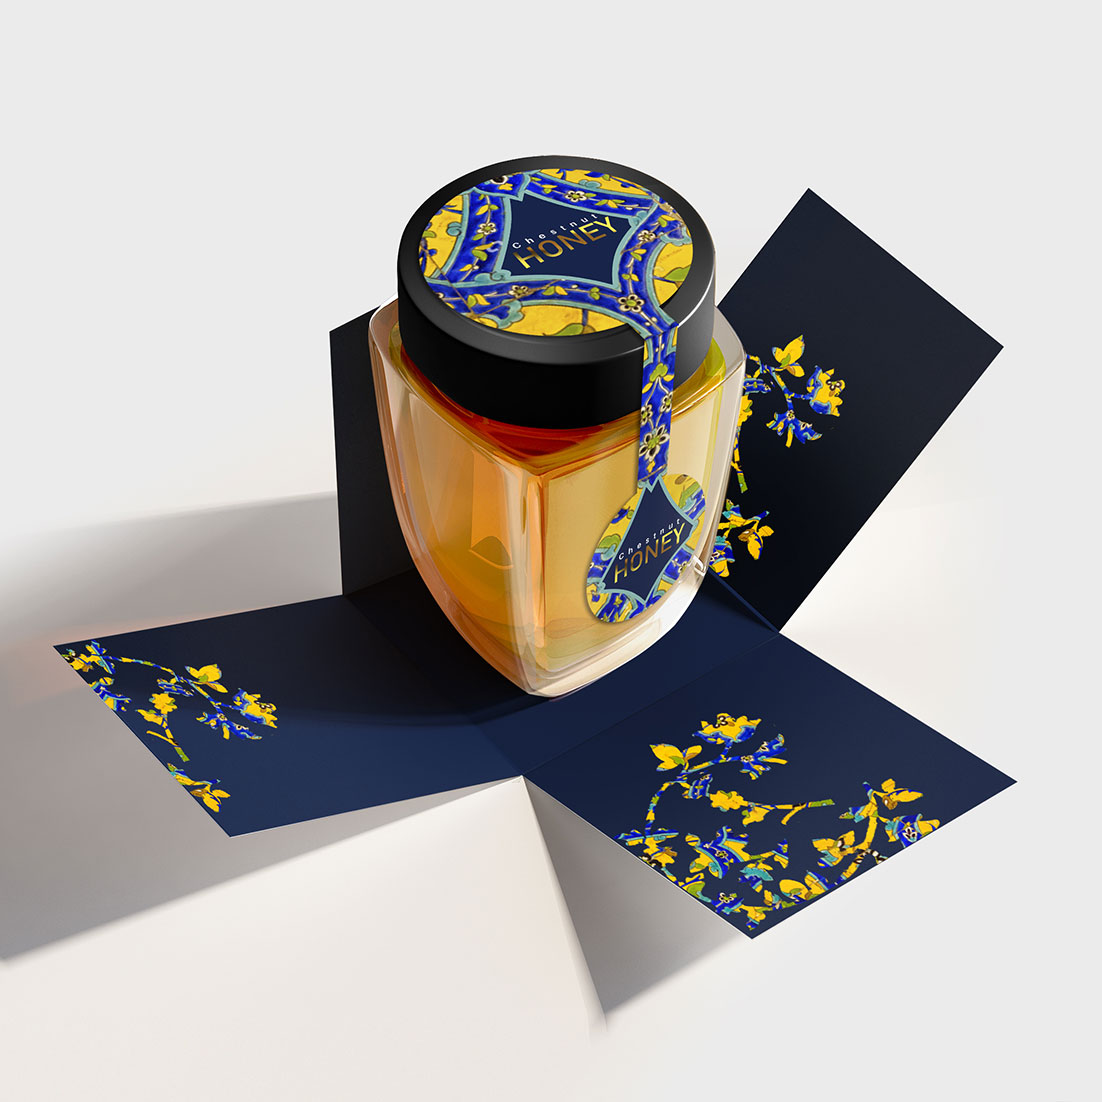 Taha Fakouri Create New Honey Packaging and label Design Concept